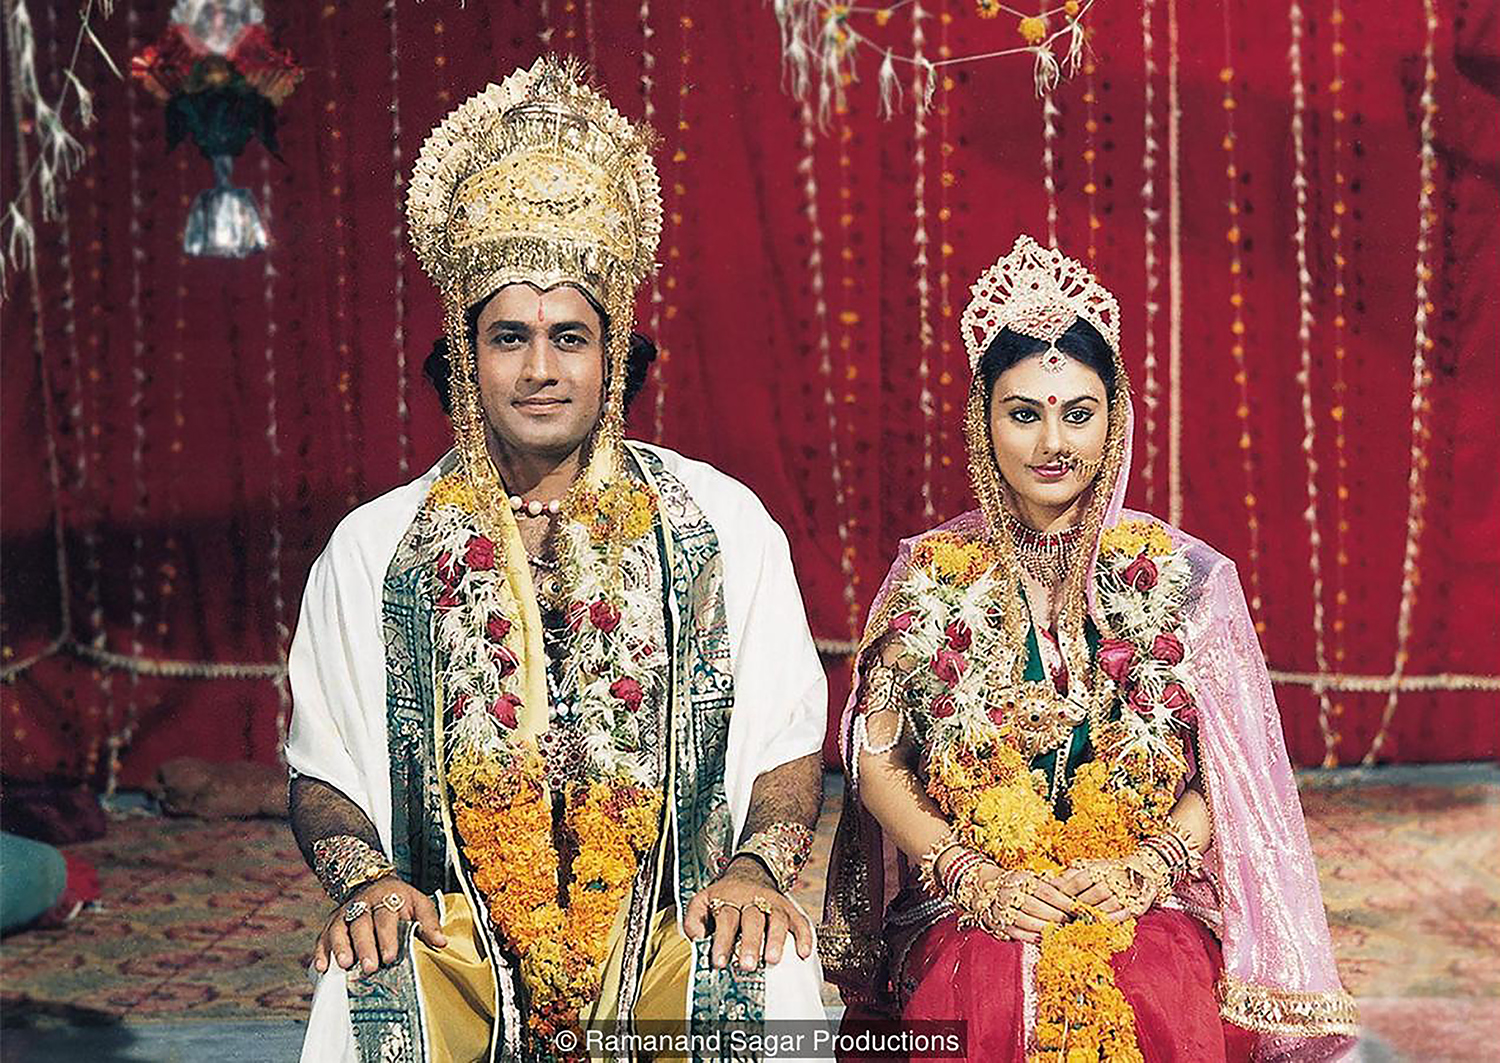 Arun Govil as Lord Ram and Deepika Chikhalia as Sita in Ramanand Sagar's TV adaptation of the epic Hindu poem <em>Ramayana</em>.